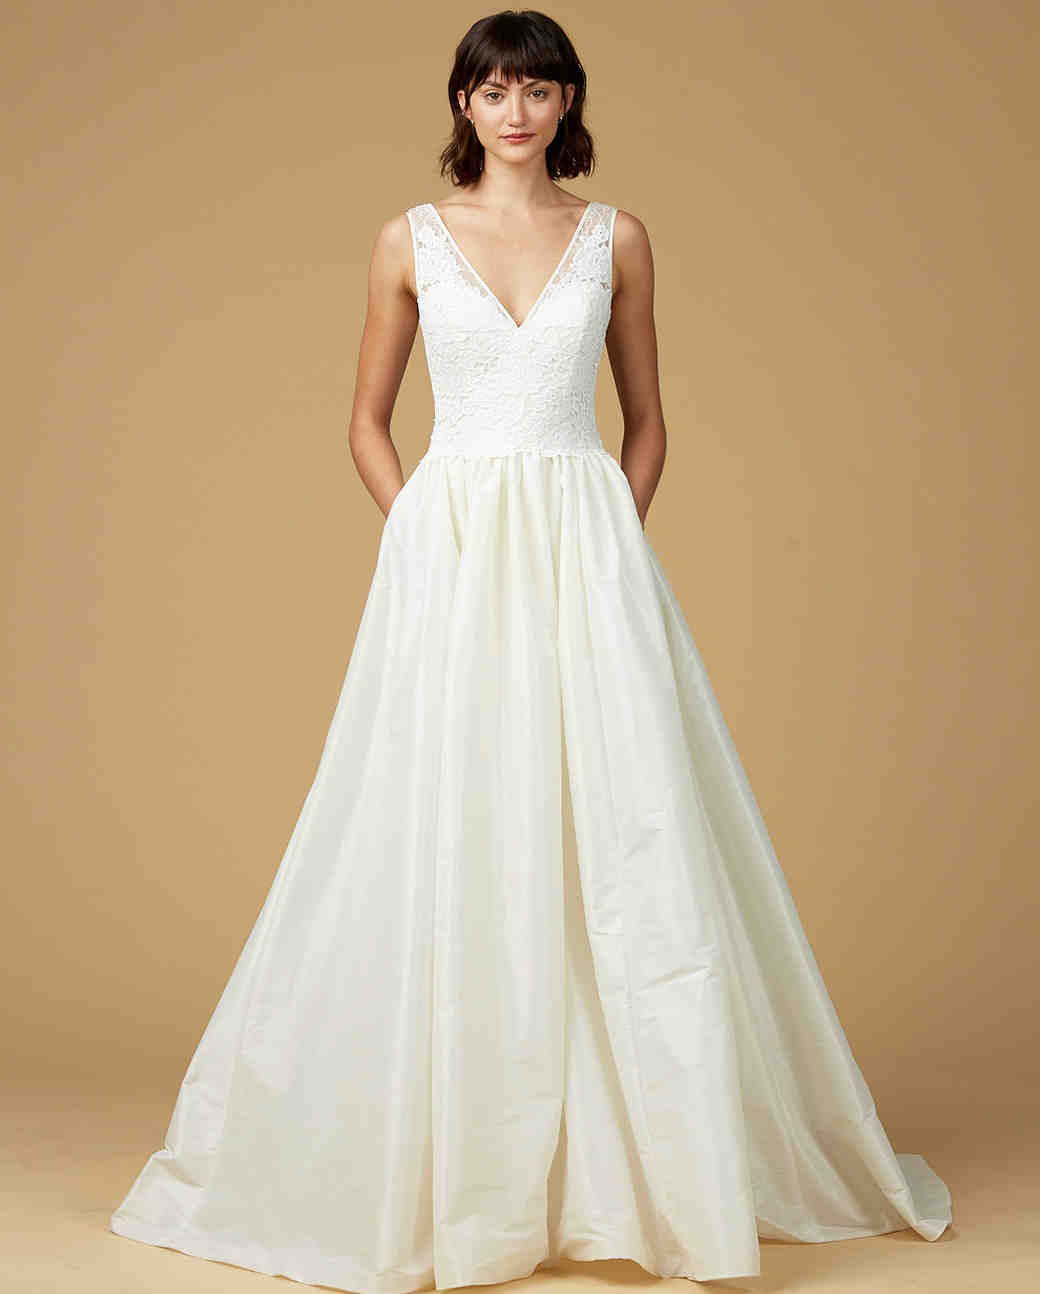 Disney Wedding Gown Collection 89 Amazing Amsale Nouvelle Fall Wedding